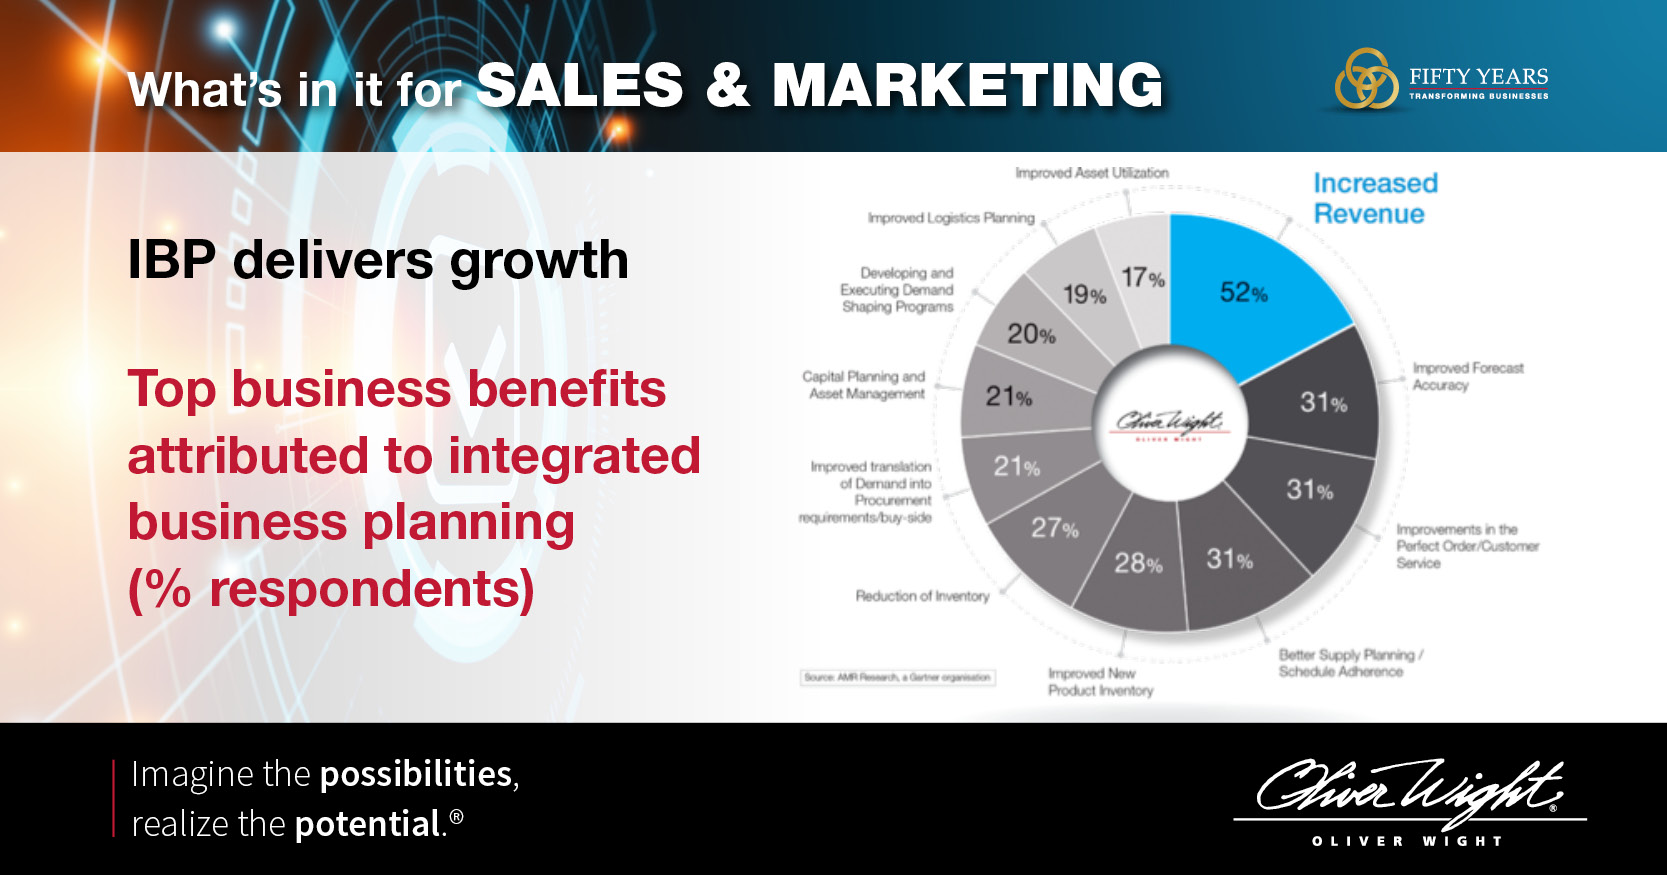 WHAT'S IN IT FOR SALES & MARKETING